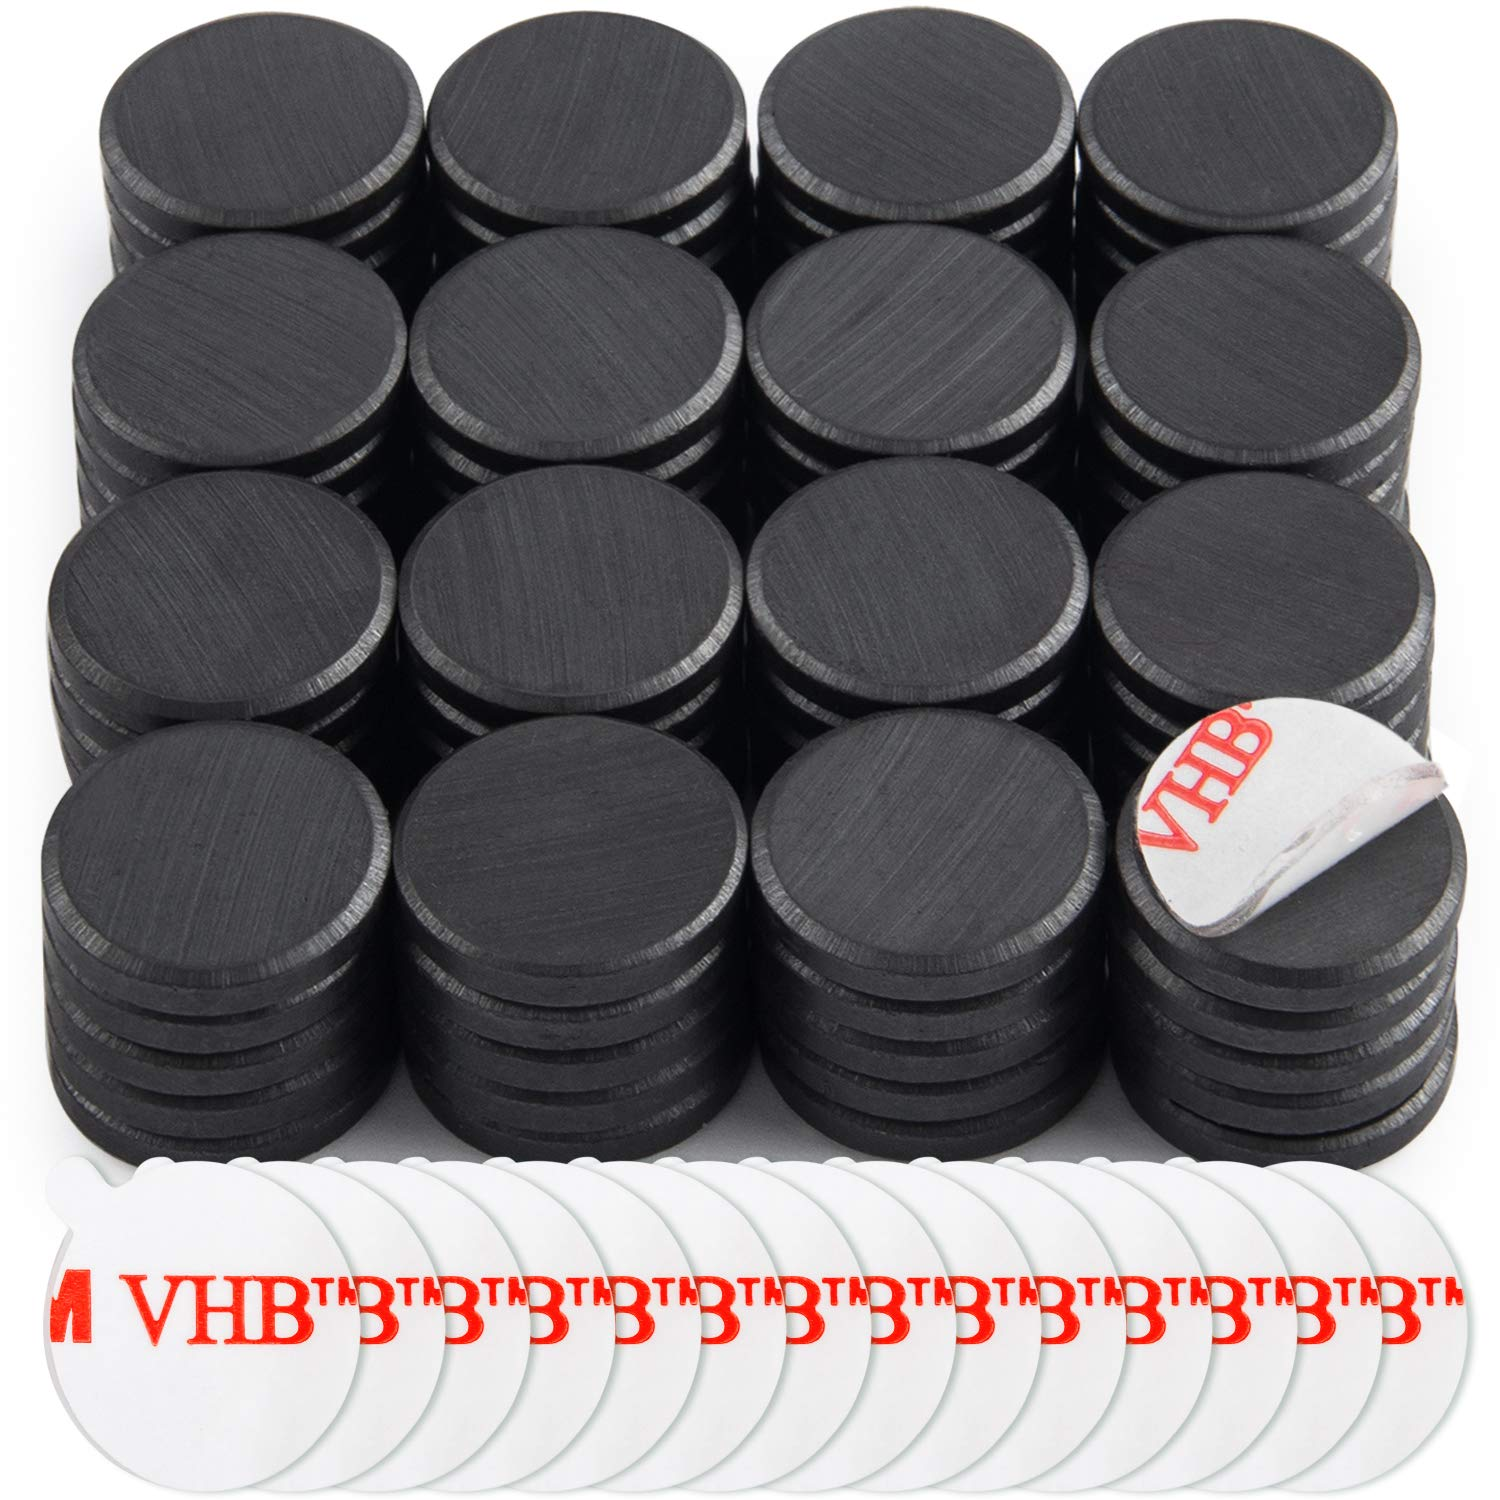 D10mm Double Sided Adhesive Disc Double Sided Adhesive for Magnets 10mm 1mm Round Permanent,Fridge,DIY,Building,Scientific,Craft,Office Magnets